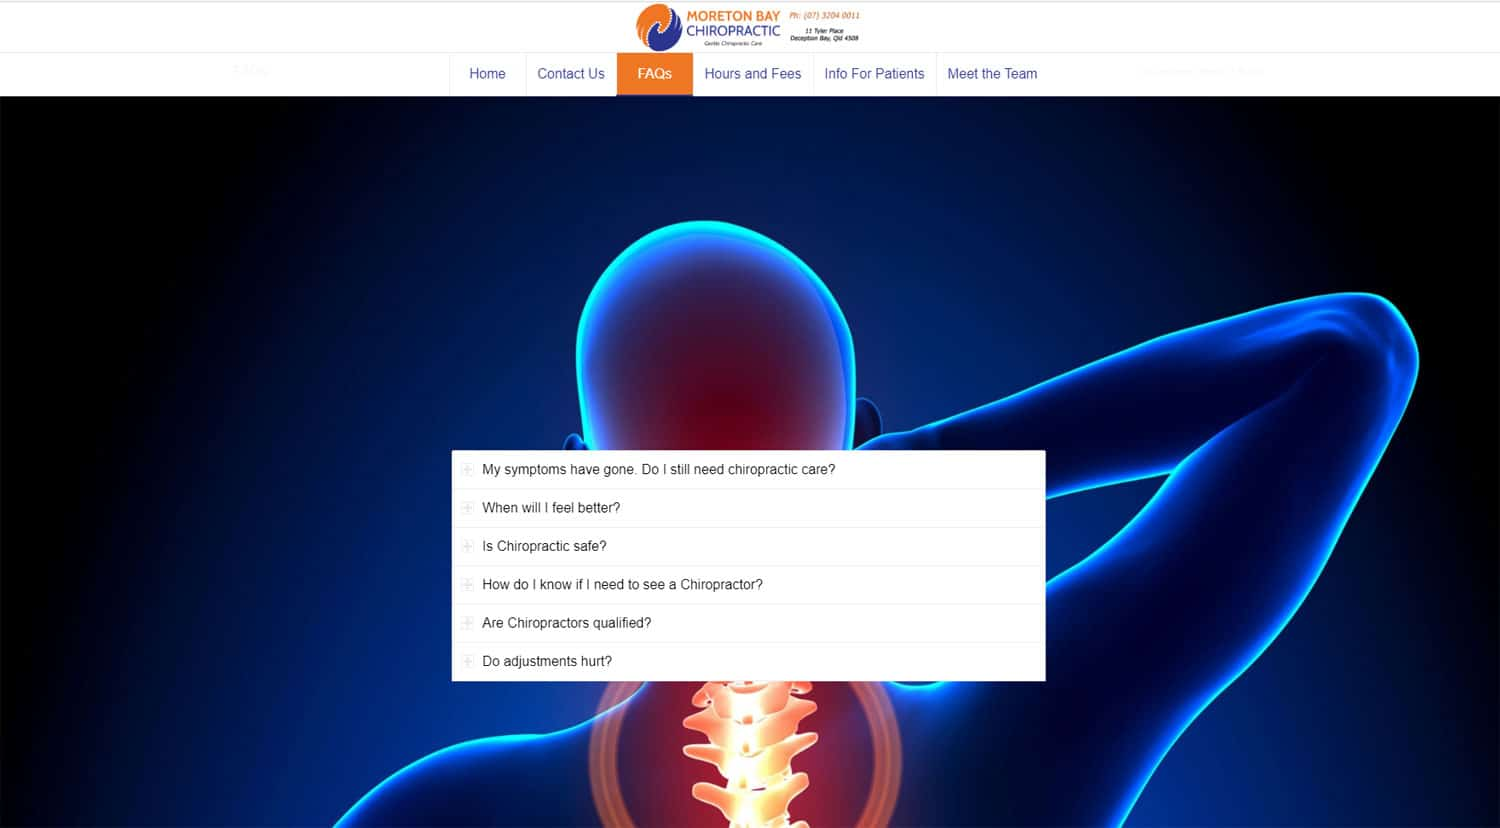 Moreton Bay Chiropractic FAQs Page